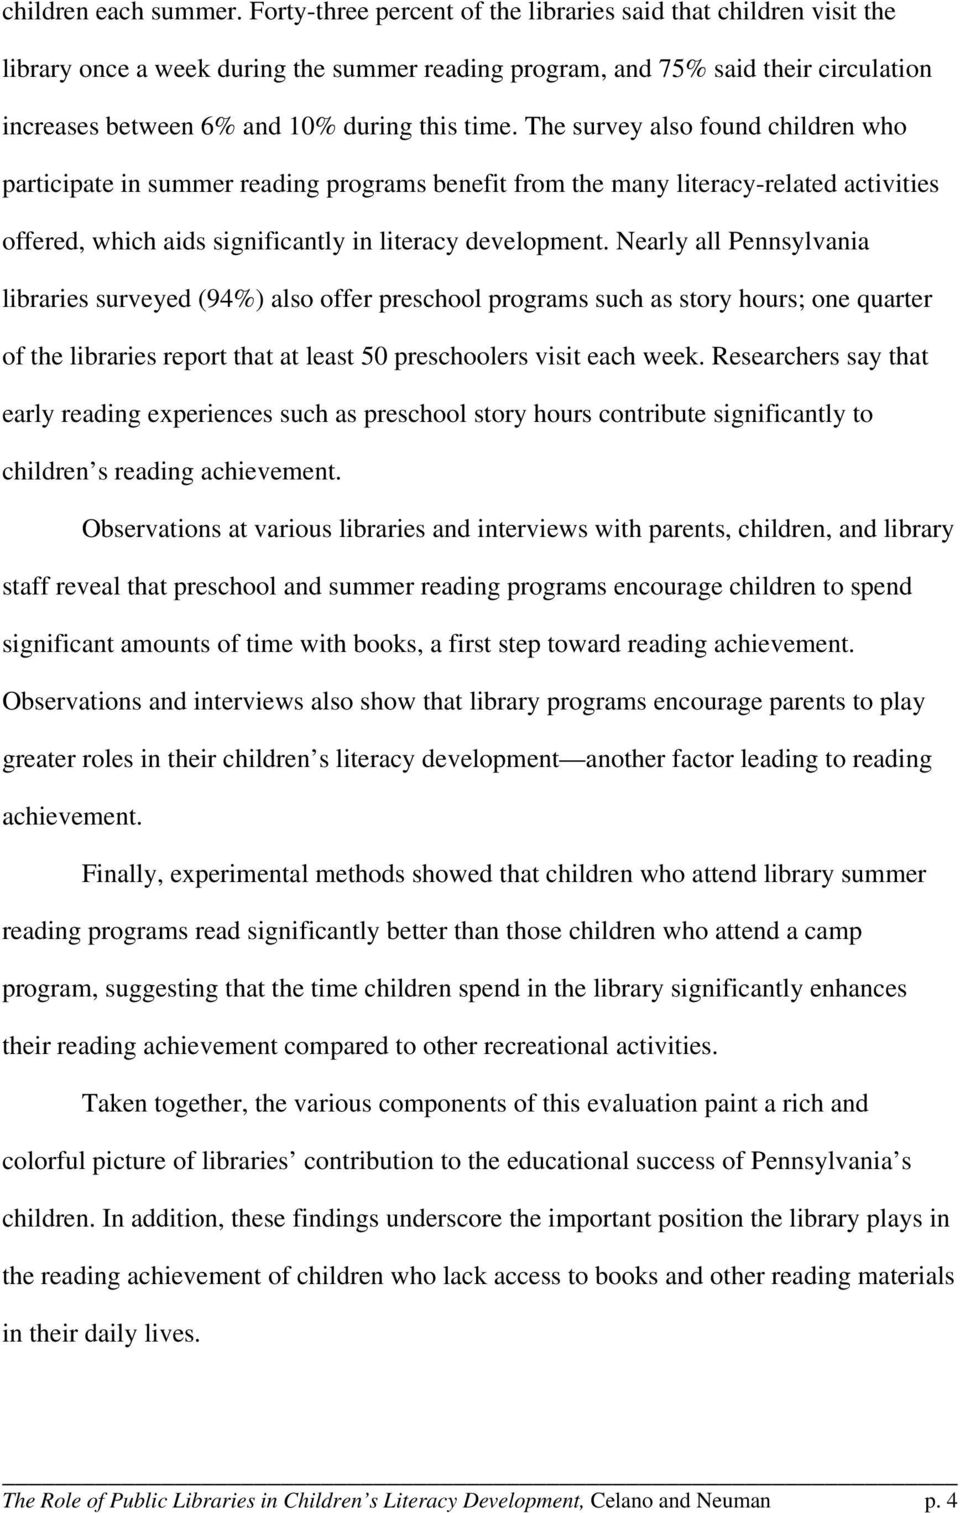 The survey also found children who participate in summer reading programs benefit from the many literacy-related activities offered, which aids significantly in literacy development.